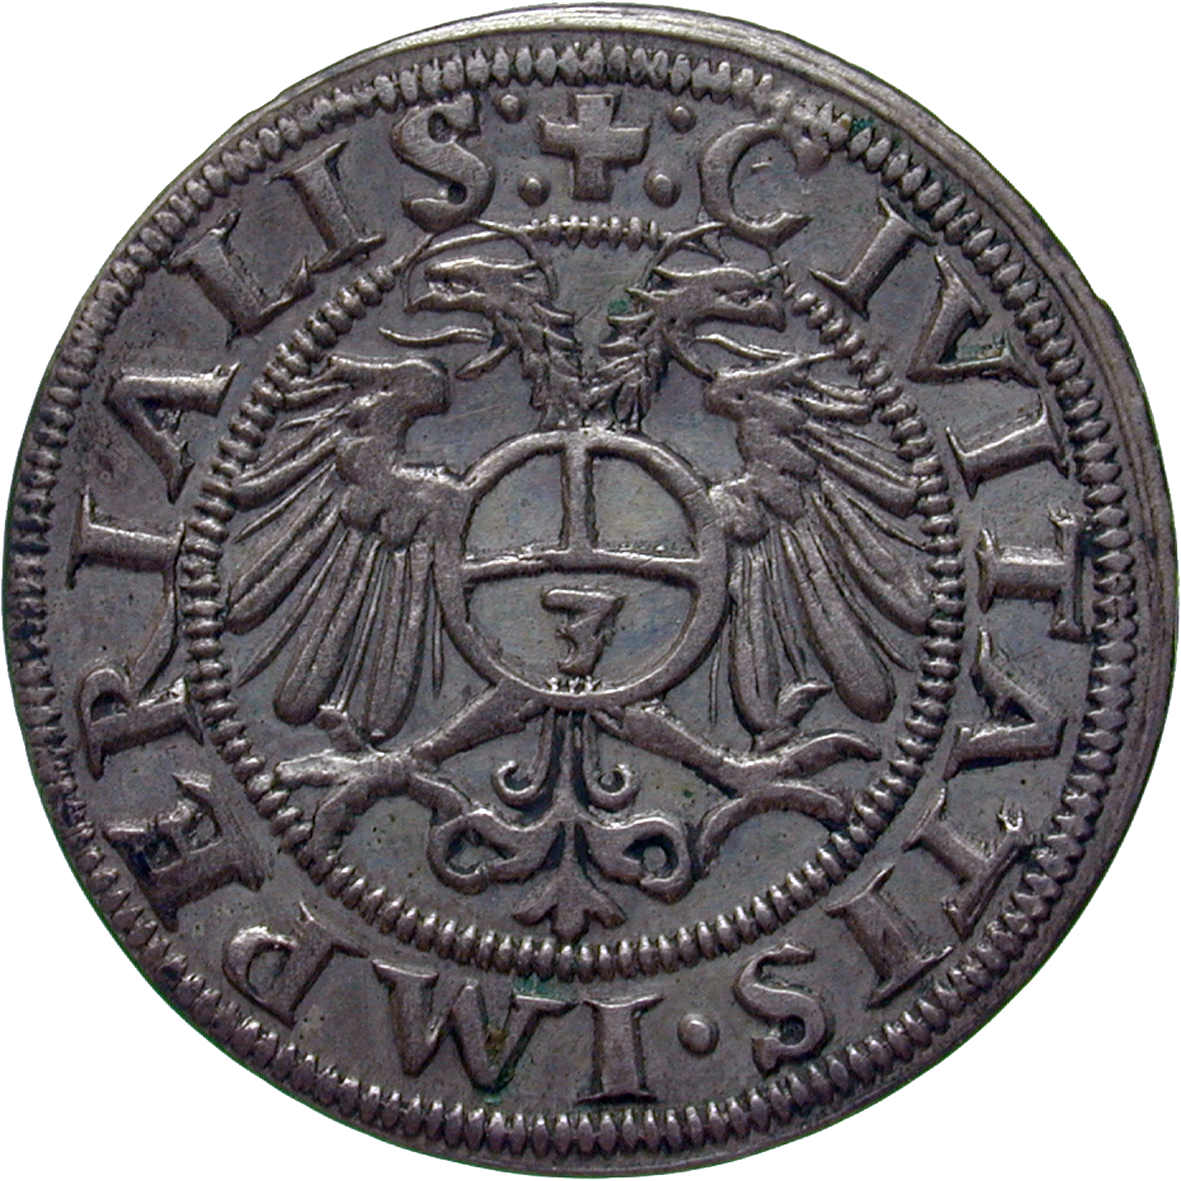 Holy Roman Empire, City of Zurich, Groschen 1563 (reverse)